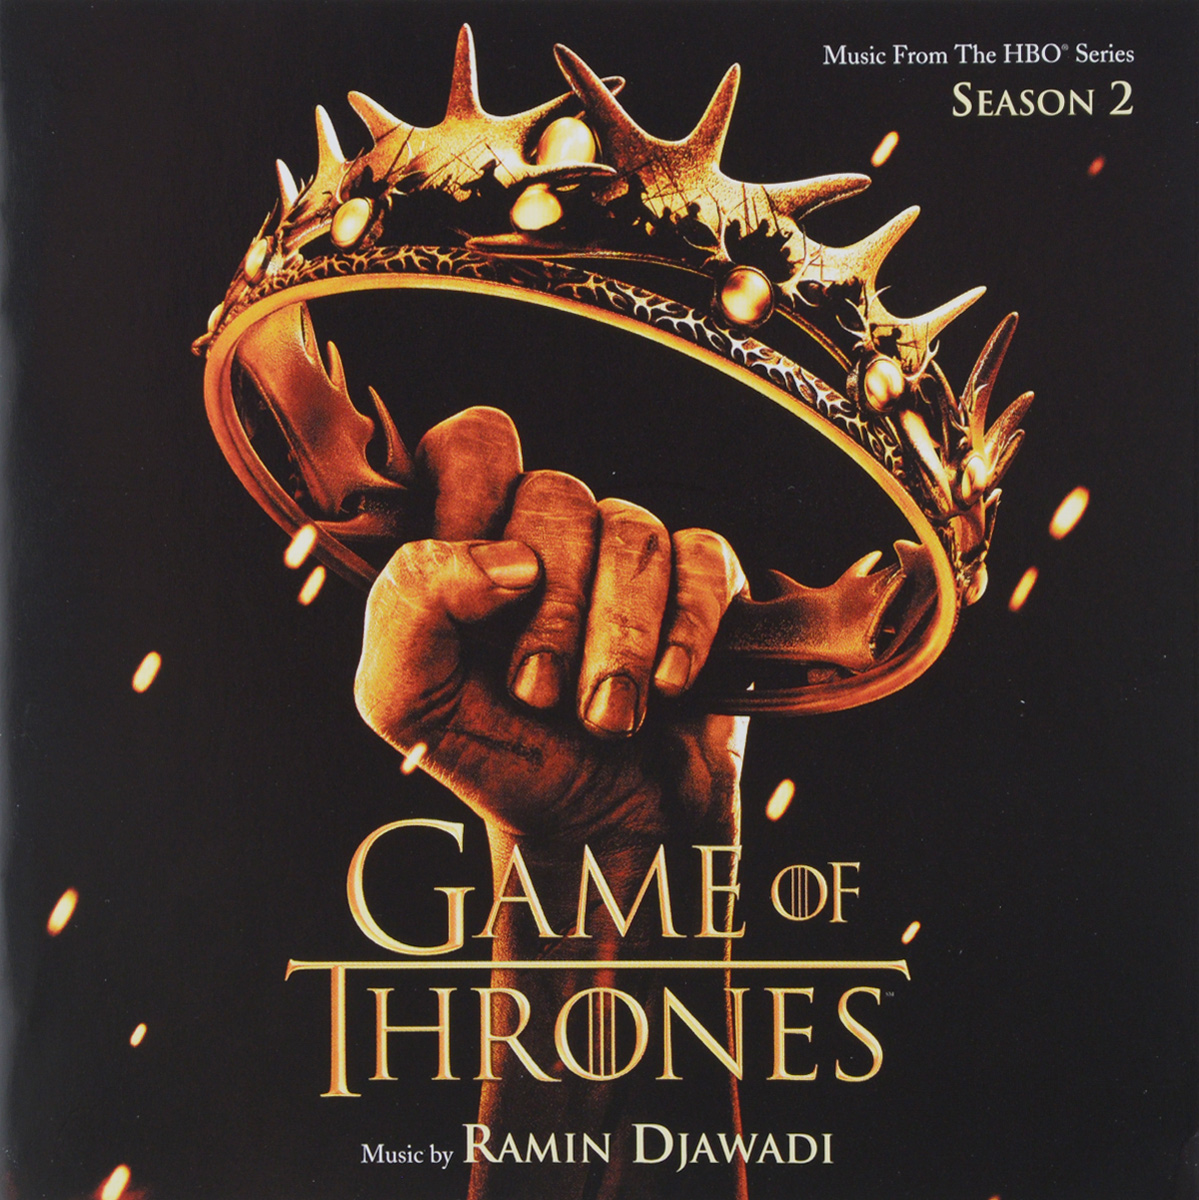 Ramin Djawadi. Game Of Thrones. Season 2 (Music From The HBO Series) slw 8095 2 5 led screen carnival duck home shooting game set w music authentic sounds red